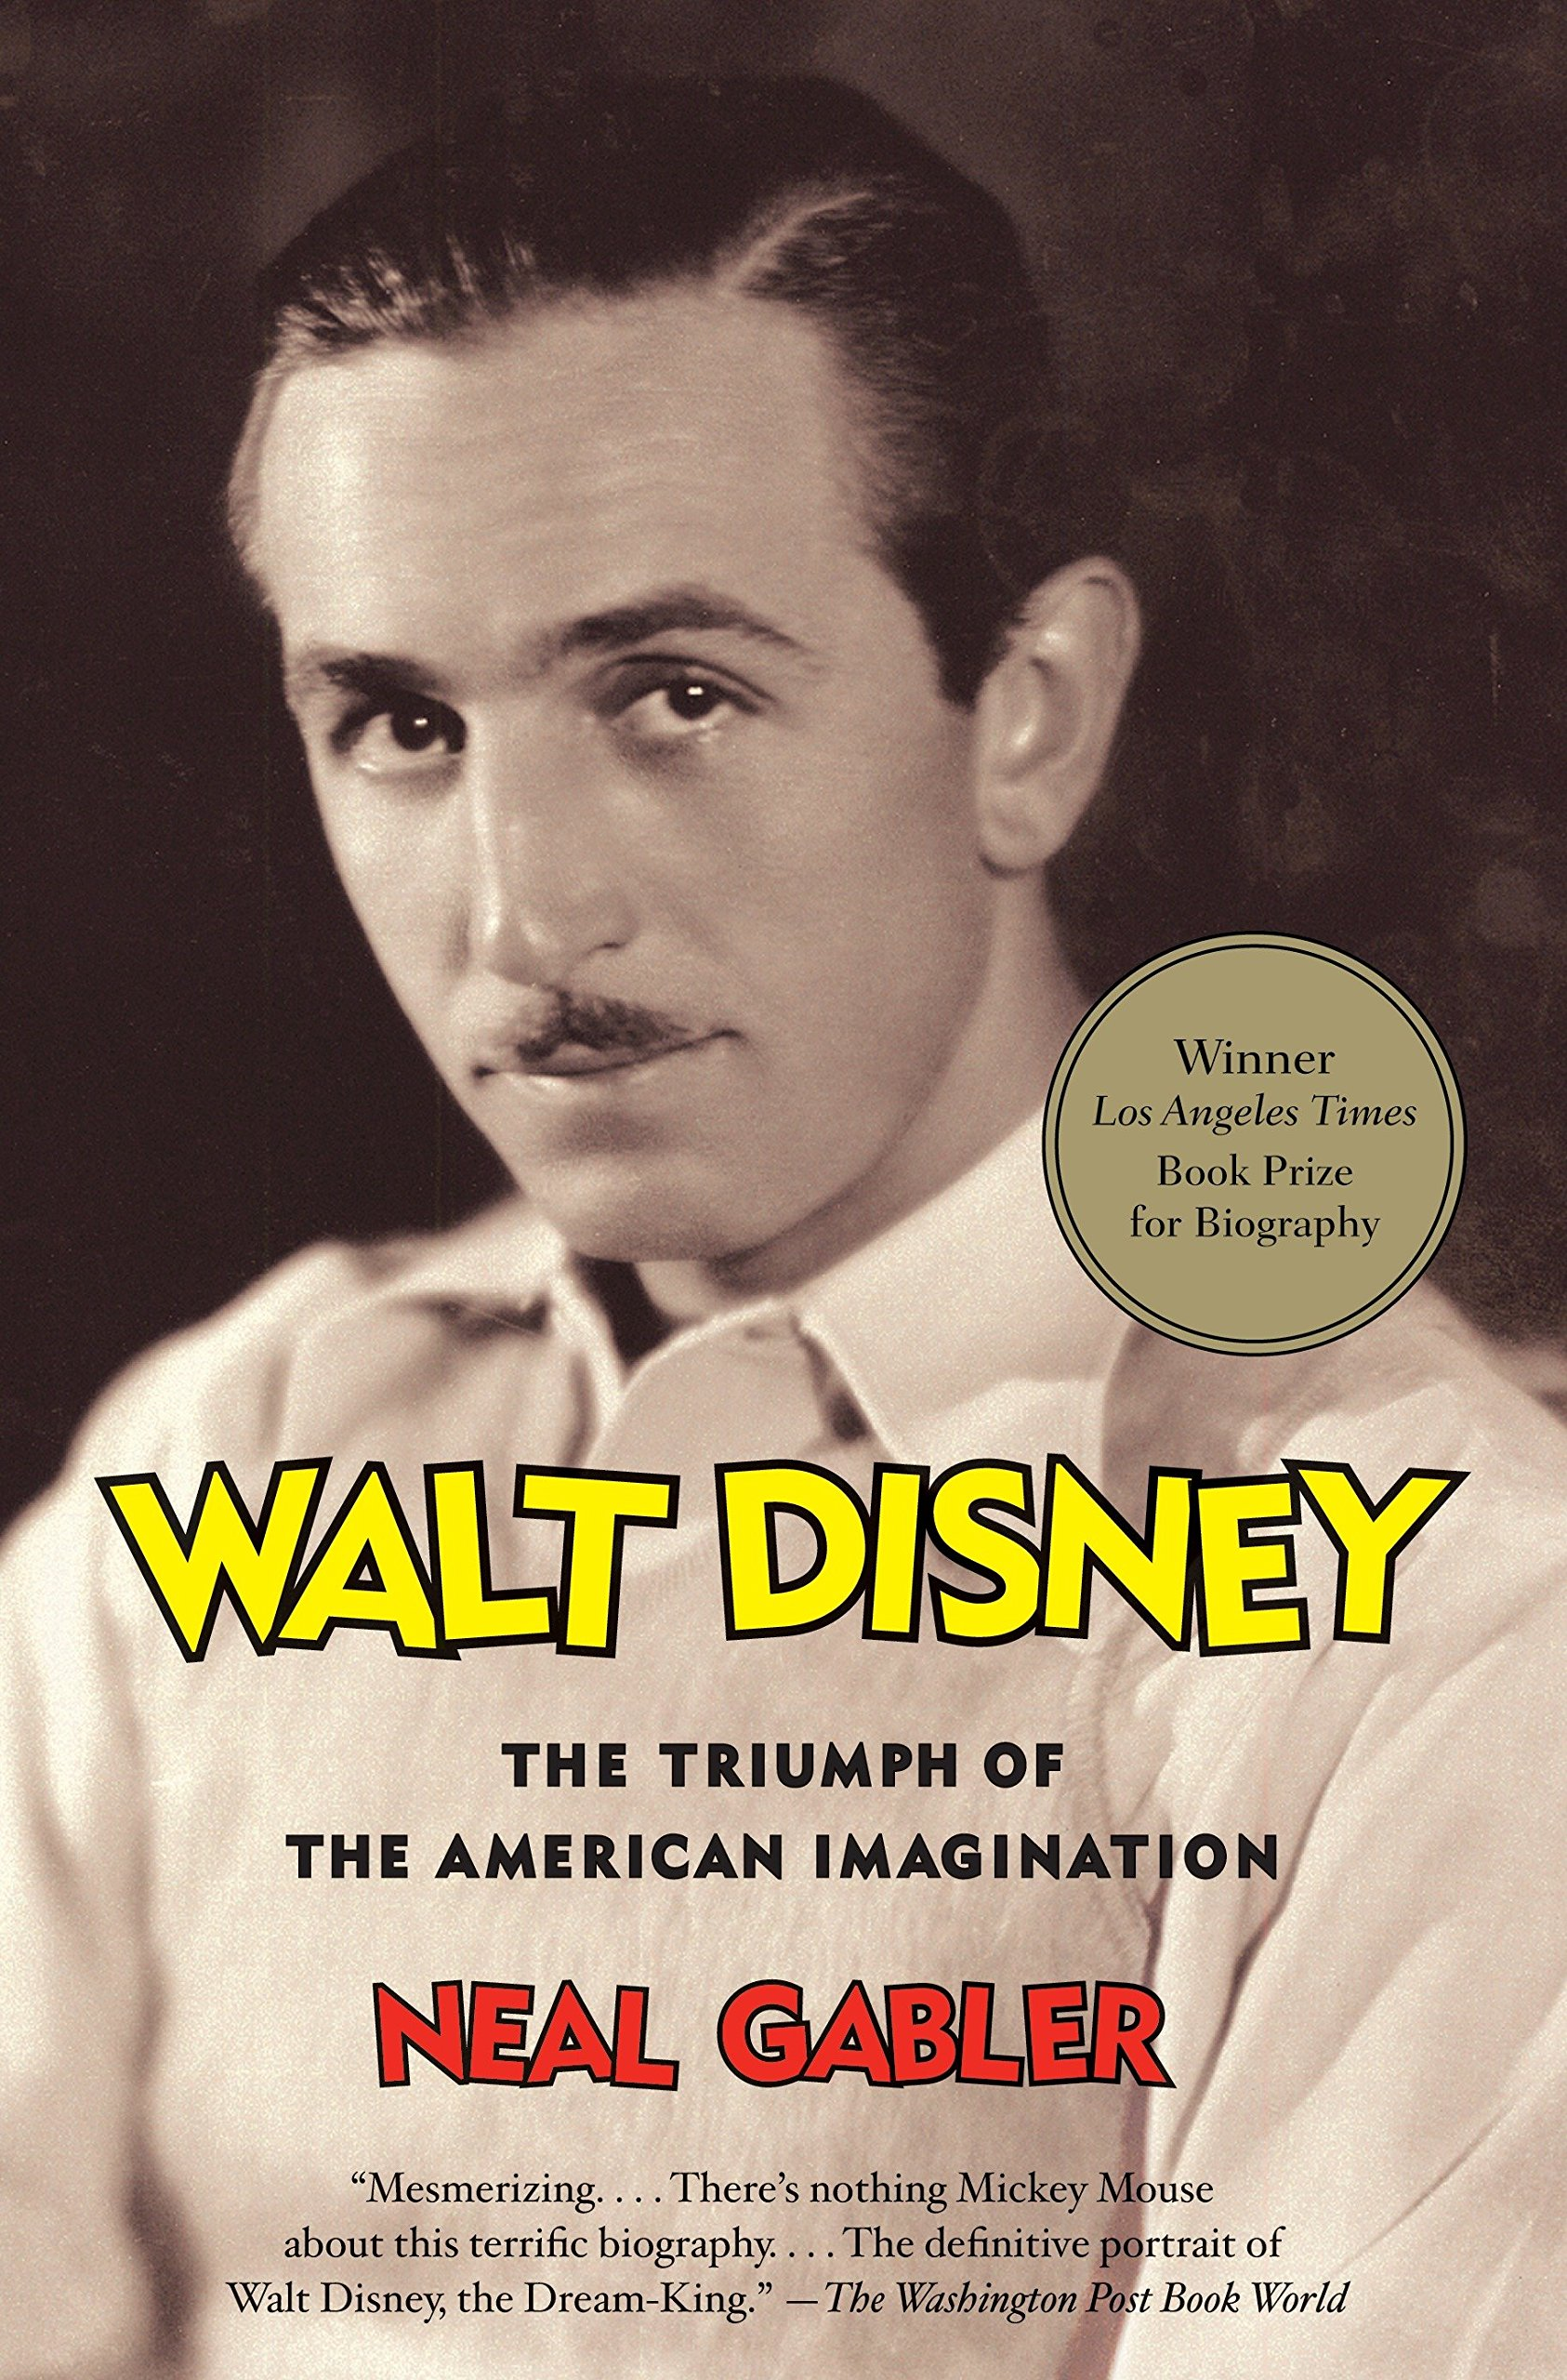 Walt Disney: The Triumph of the American Imagination: Amazon.es: Neal Gabler: Libros en idiomas extranjeros